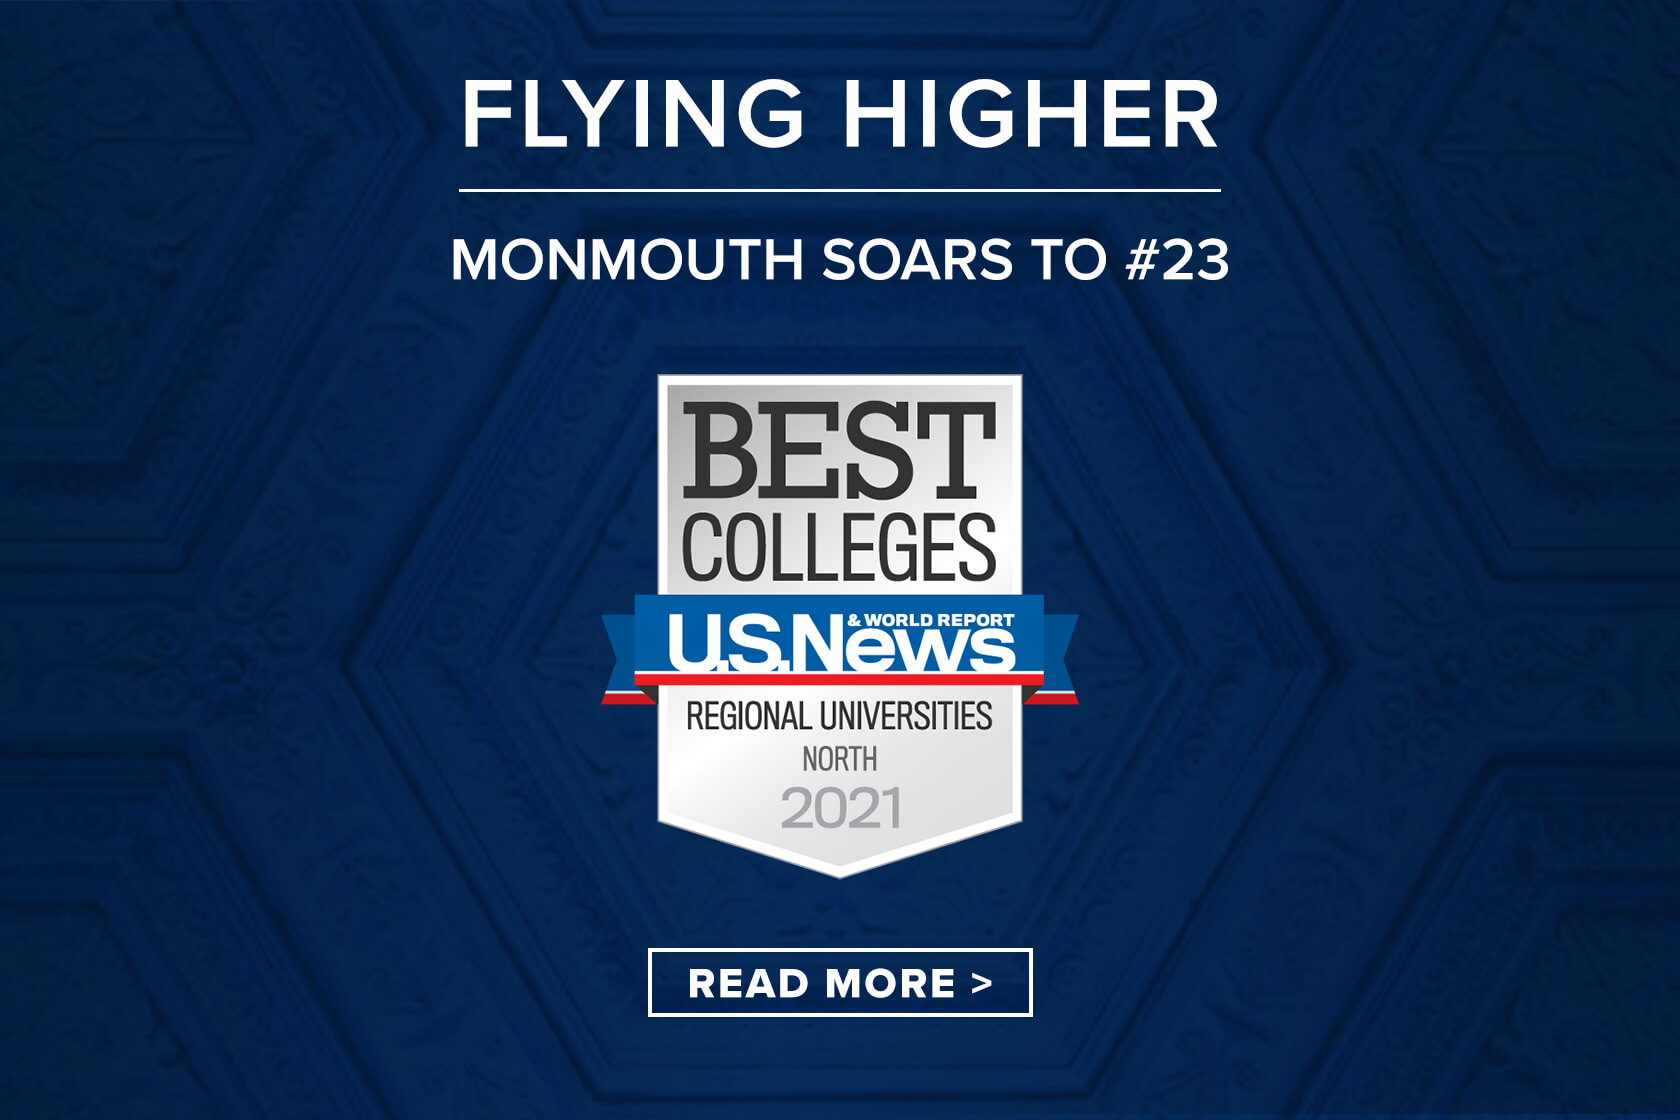 Flying Higher. Monmouth Soars to Number 23. U.S. News & World Report Regional Universities North 2021